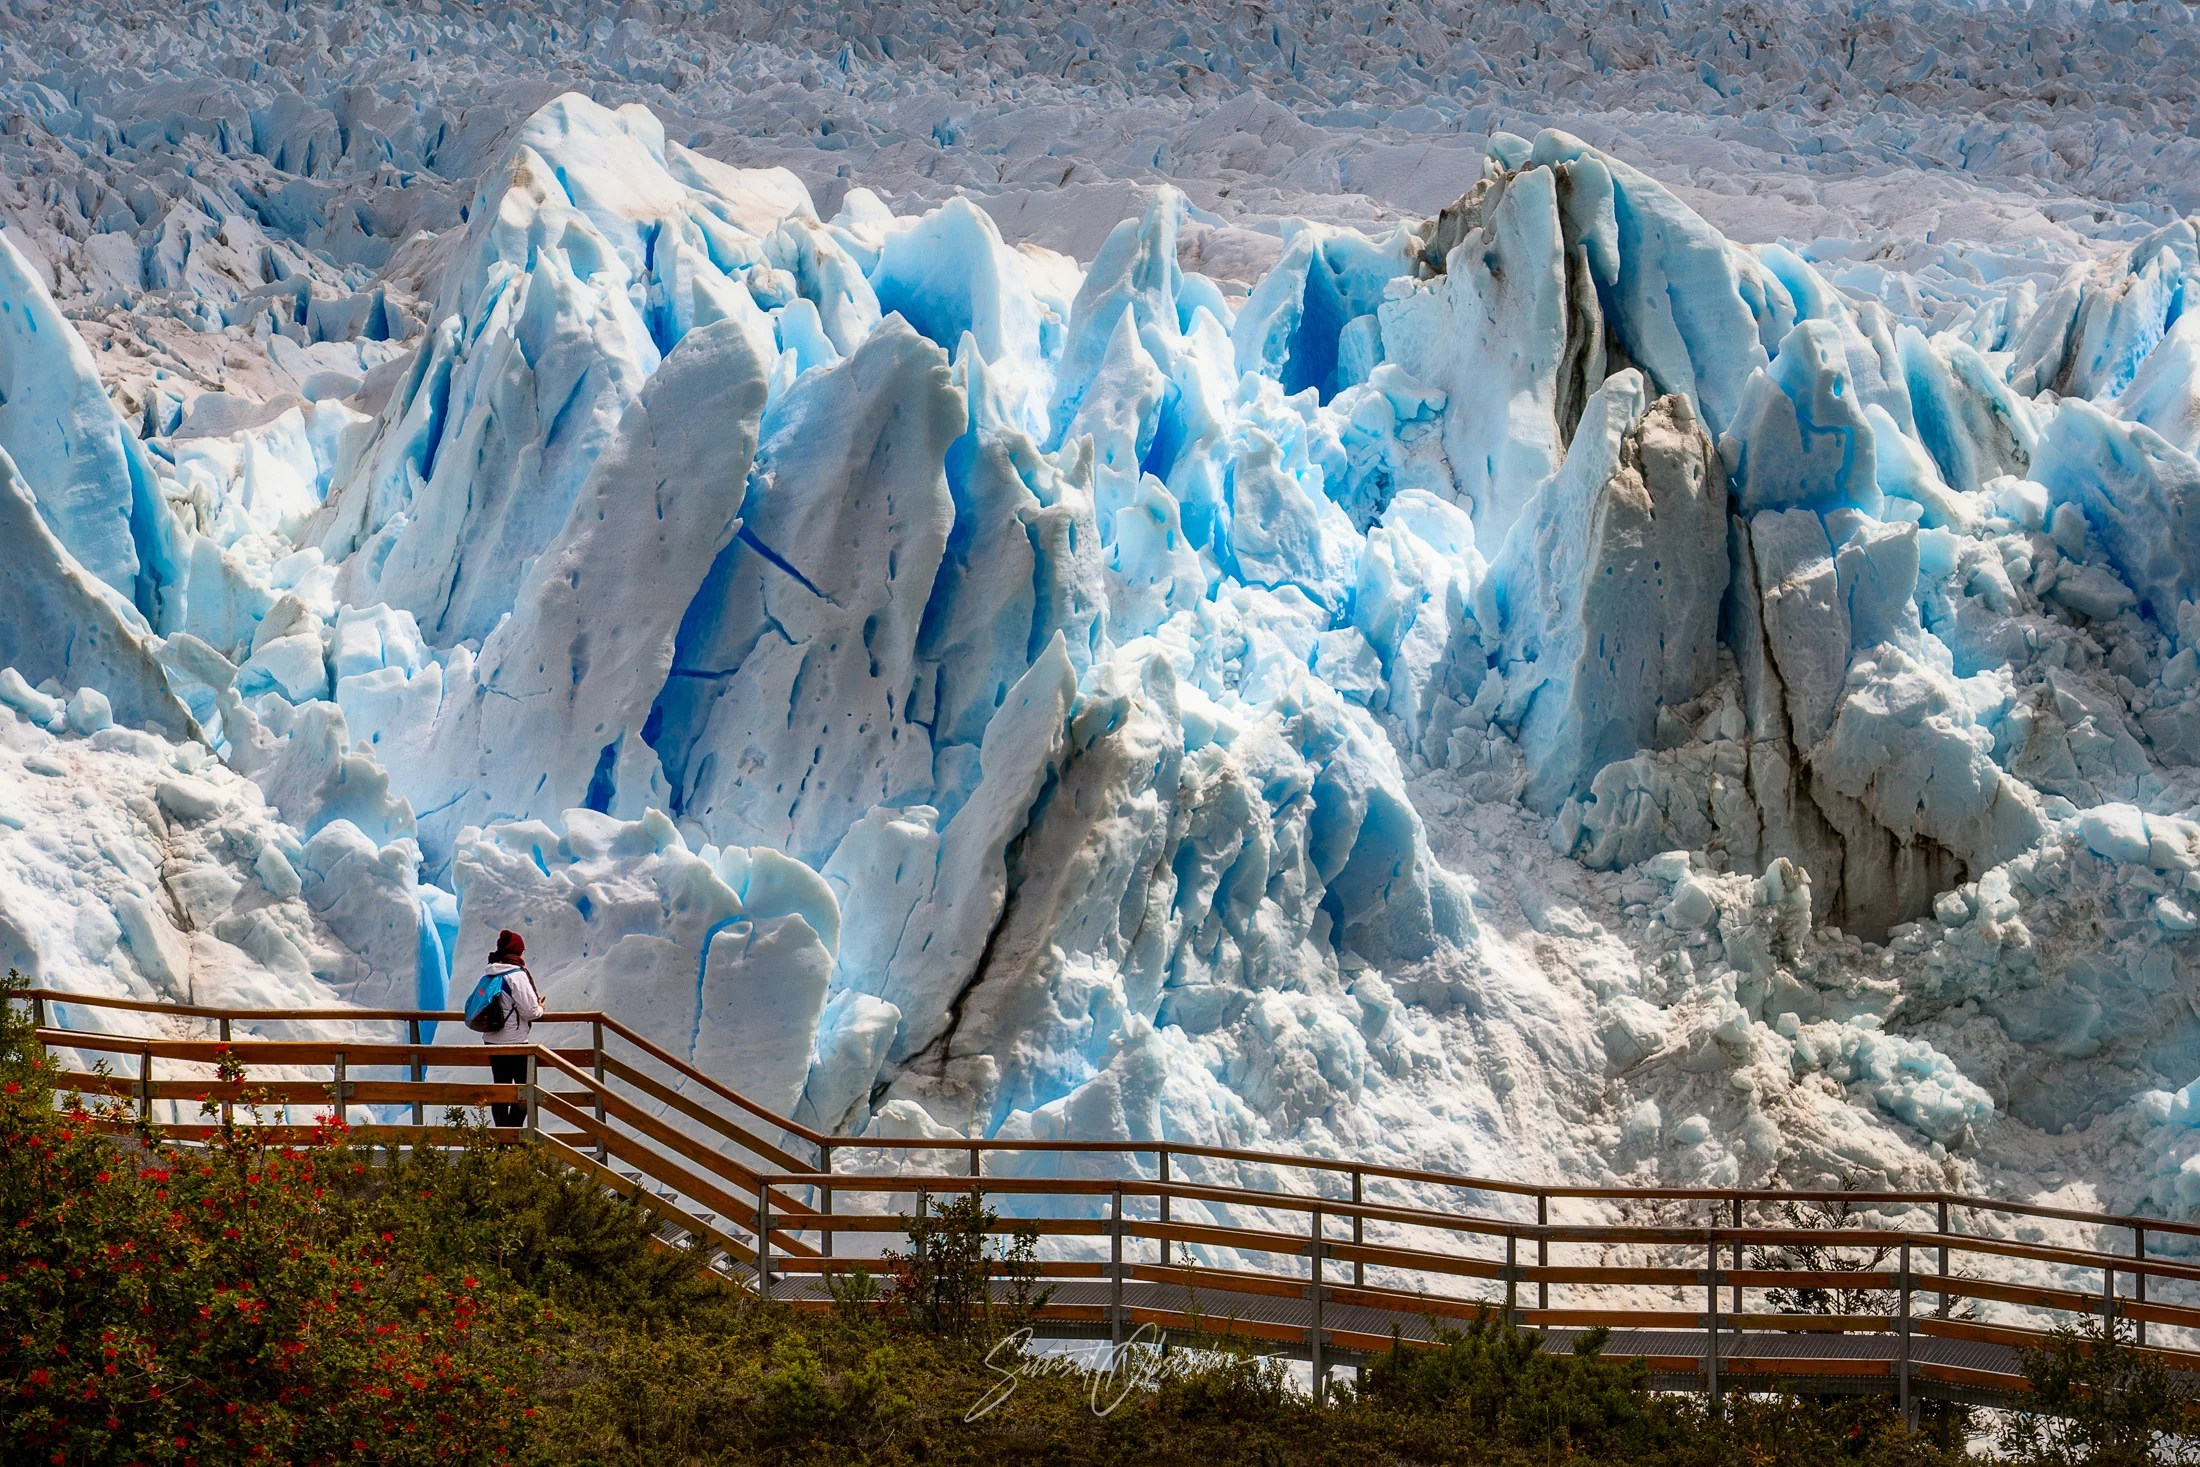 Perito Moreno glacier is still one of the best landscape photography locations in Patagonia